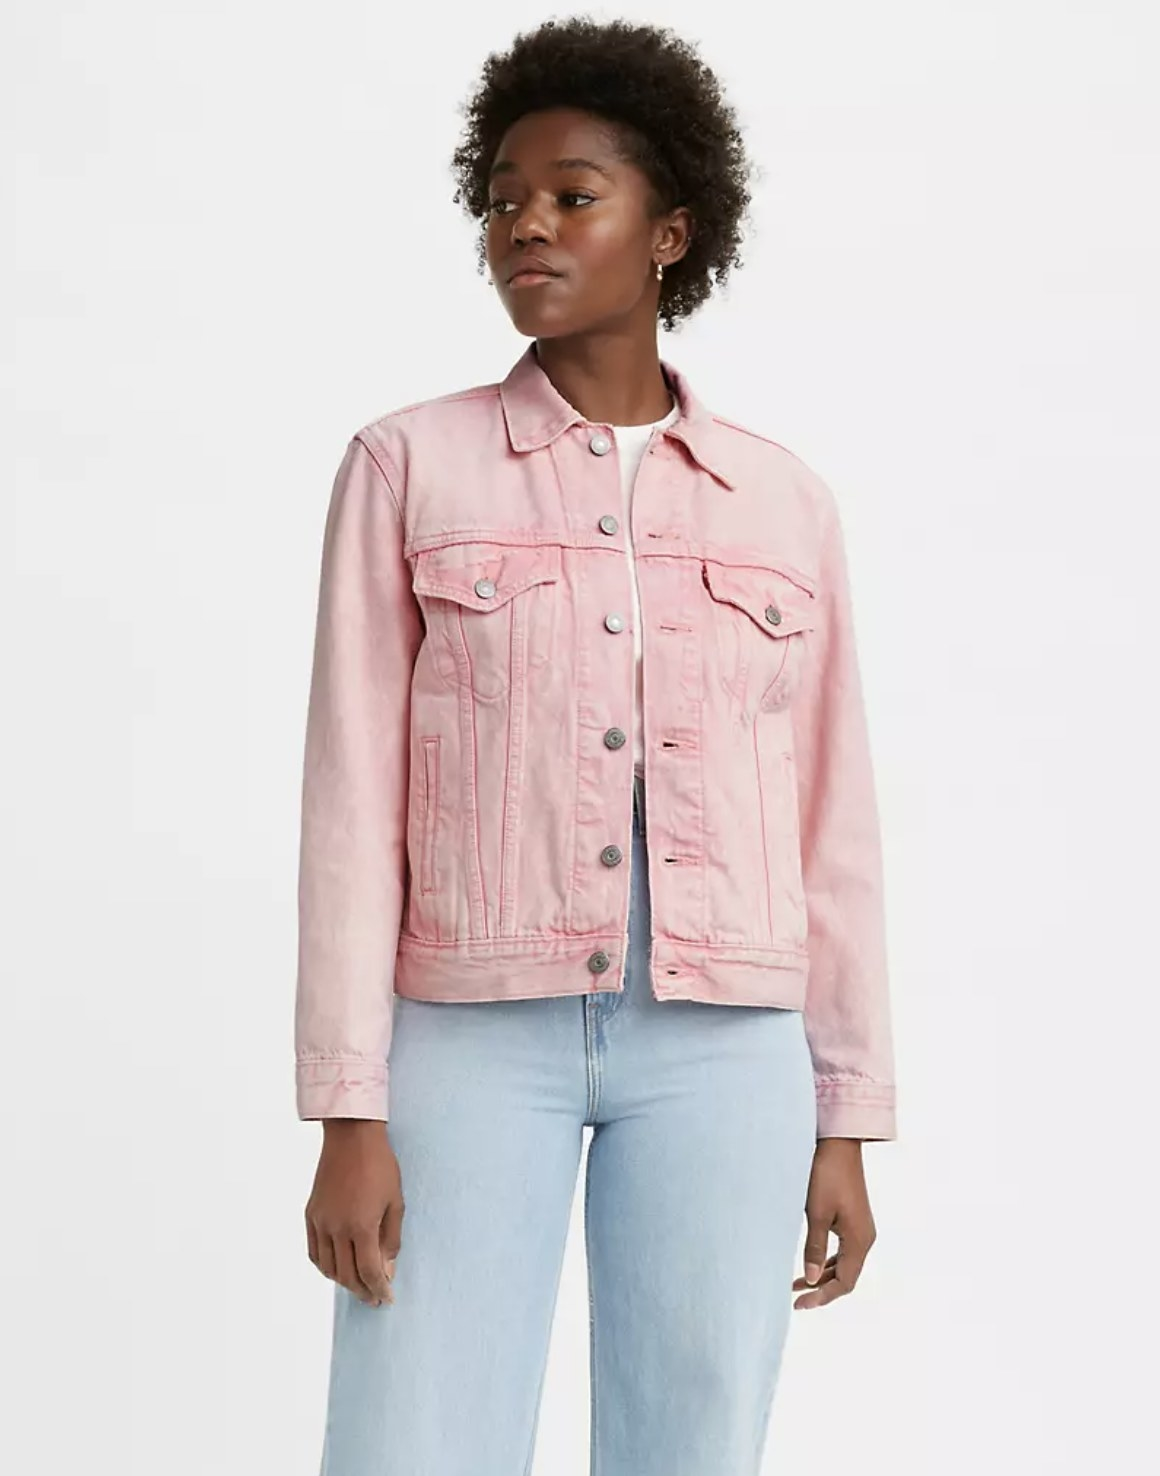 Model is wearing a white top with a pink trucker jacket over it and denim jeans